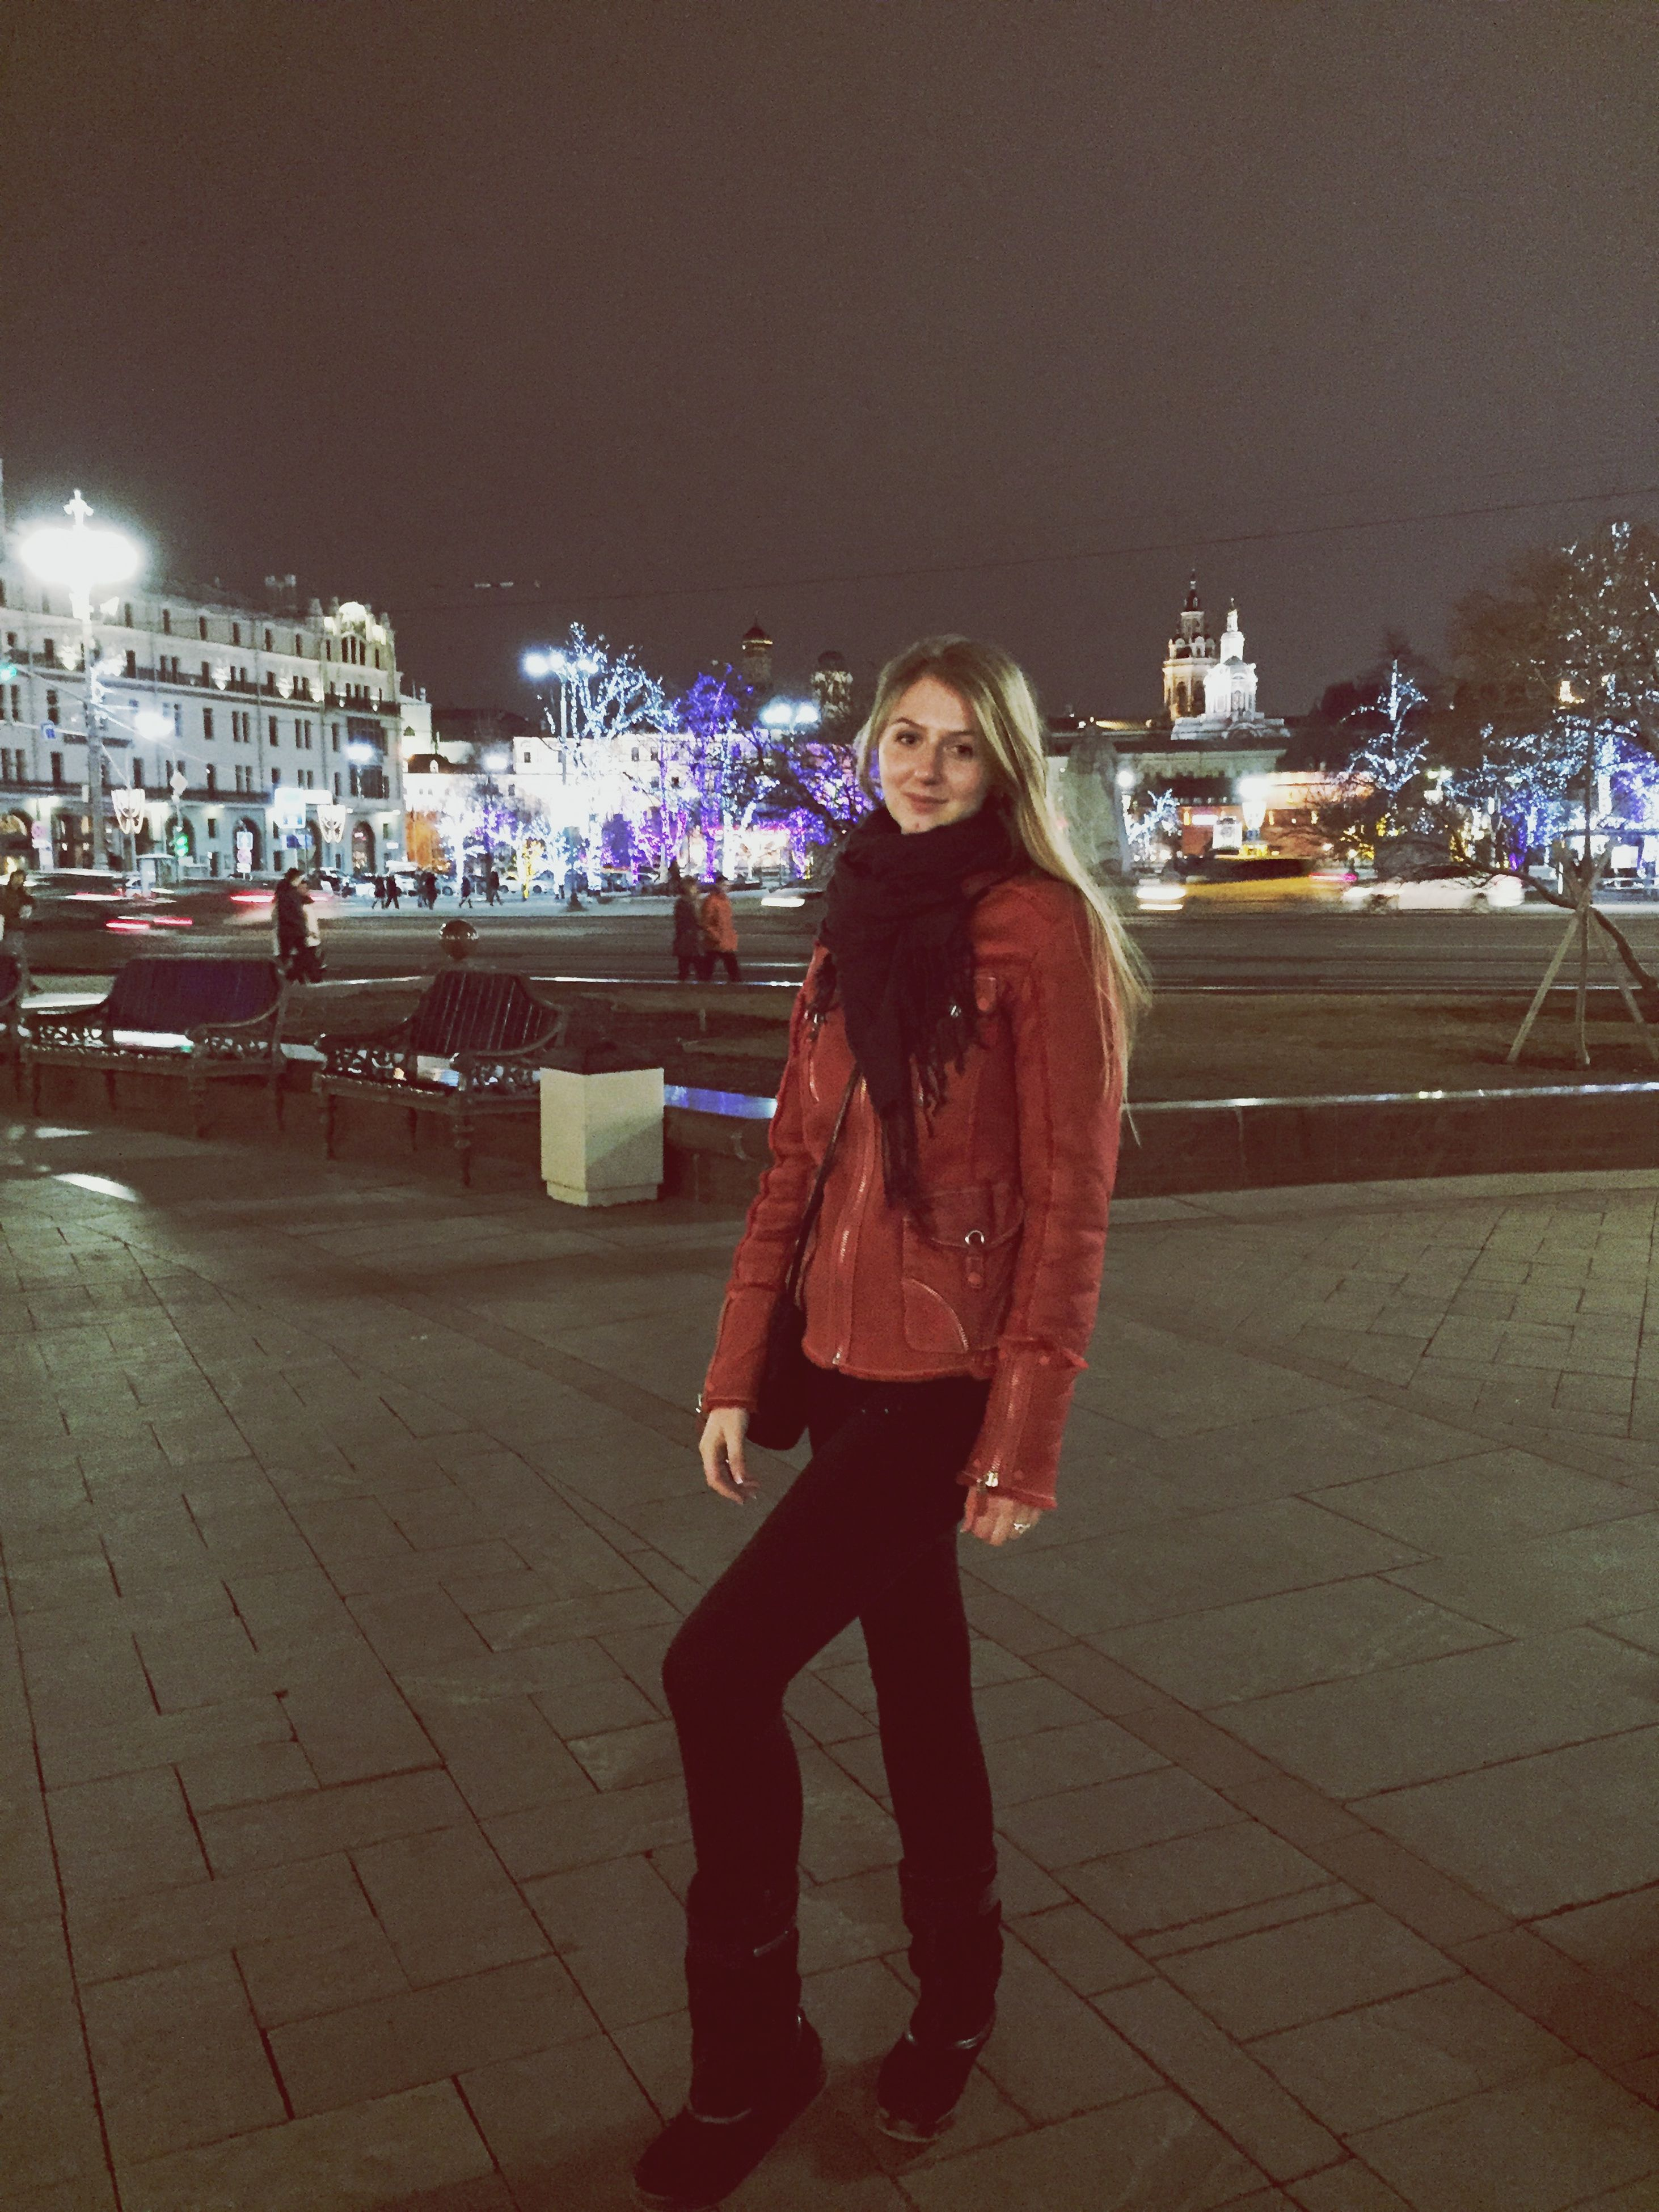 lifestyles, casual clothing, full length, young adult, young women, person, leisure activity, looking at camera, portrait, standing, front view, smiling, long hair, night, happiness, street, three quarter length